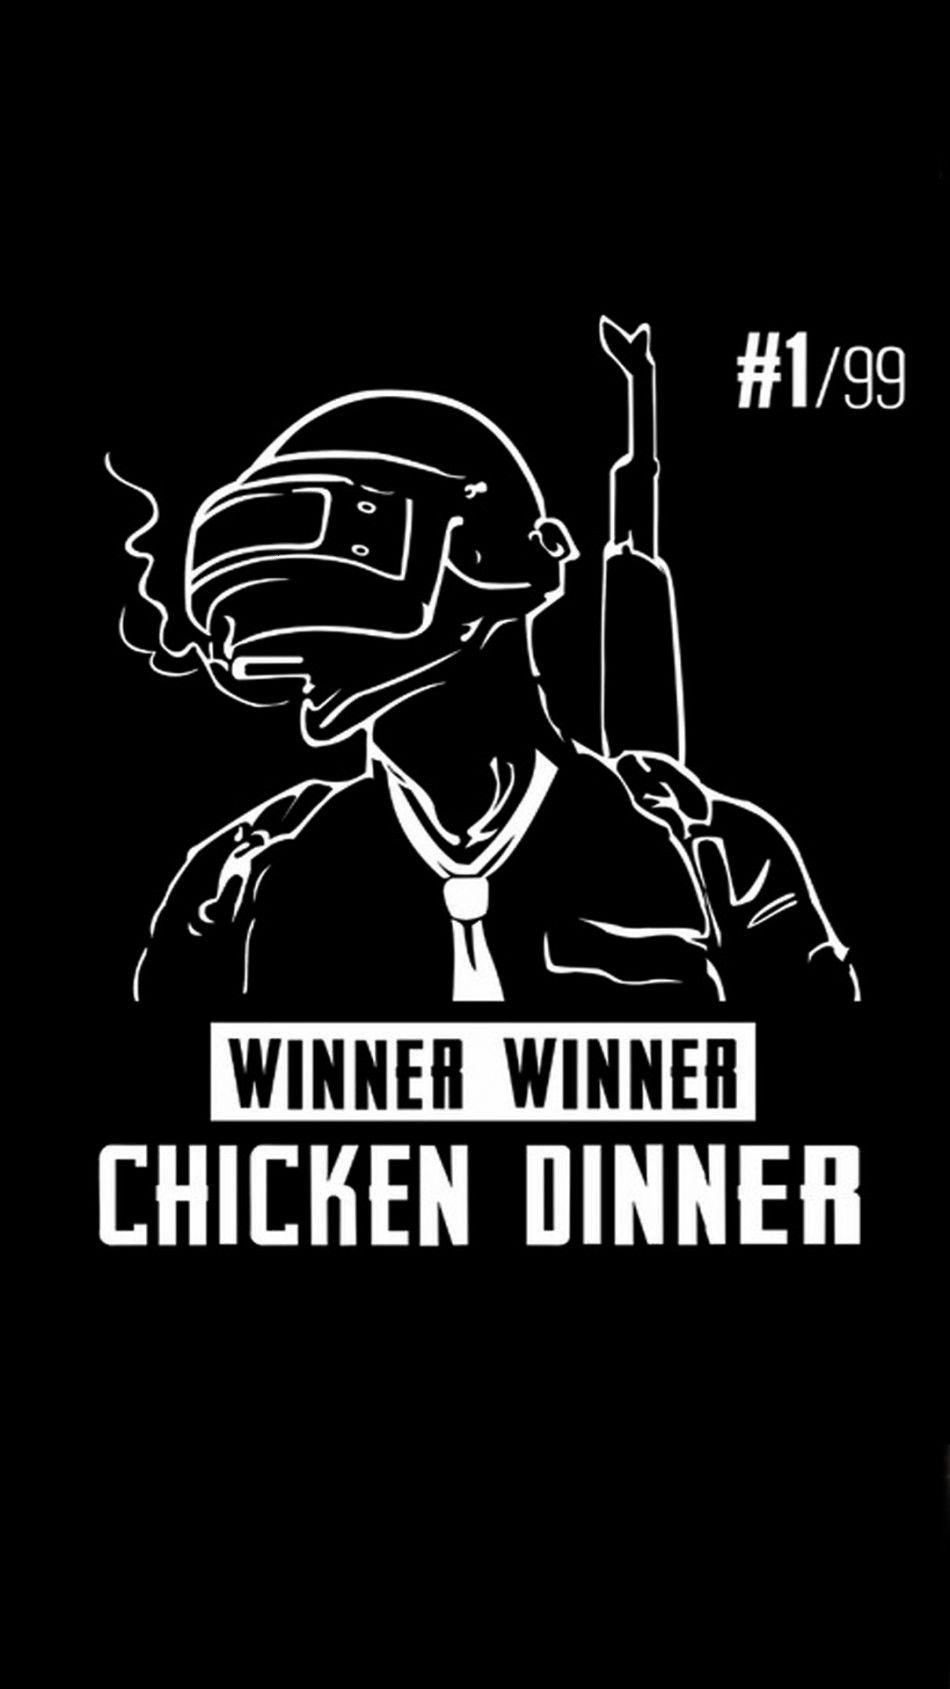 Playerunknowns Battlegrounds Wallpaper Chicken Winner Dinner Mobile Ultra Free Pubg H In 2020 Game Wallpaper Iphone Mobile Wallpaper 4k Wallpaper For Mobile